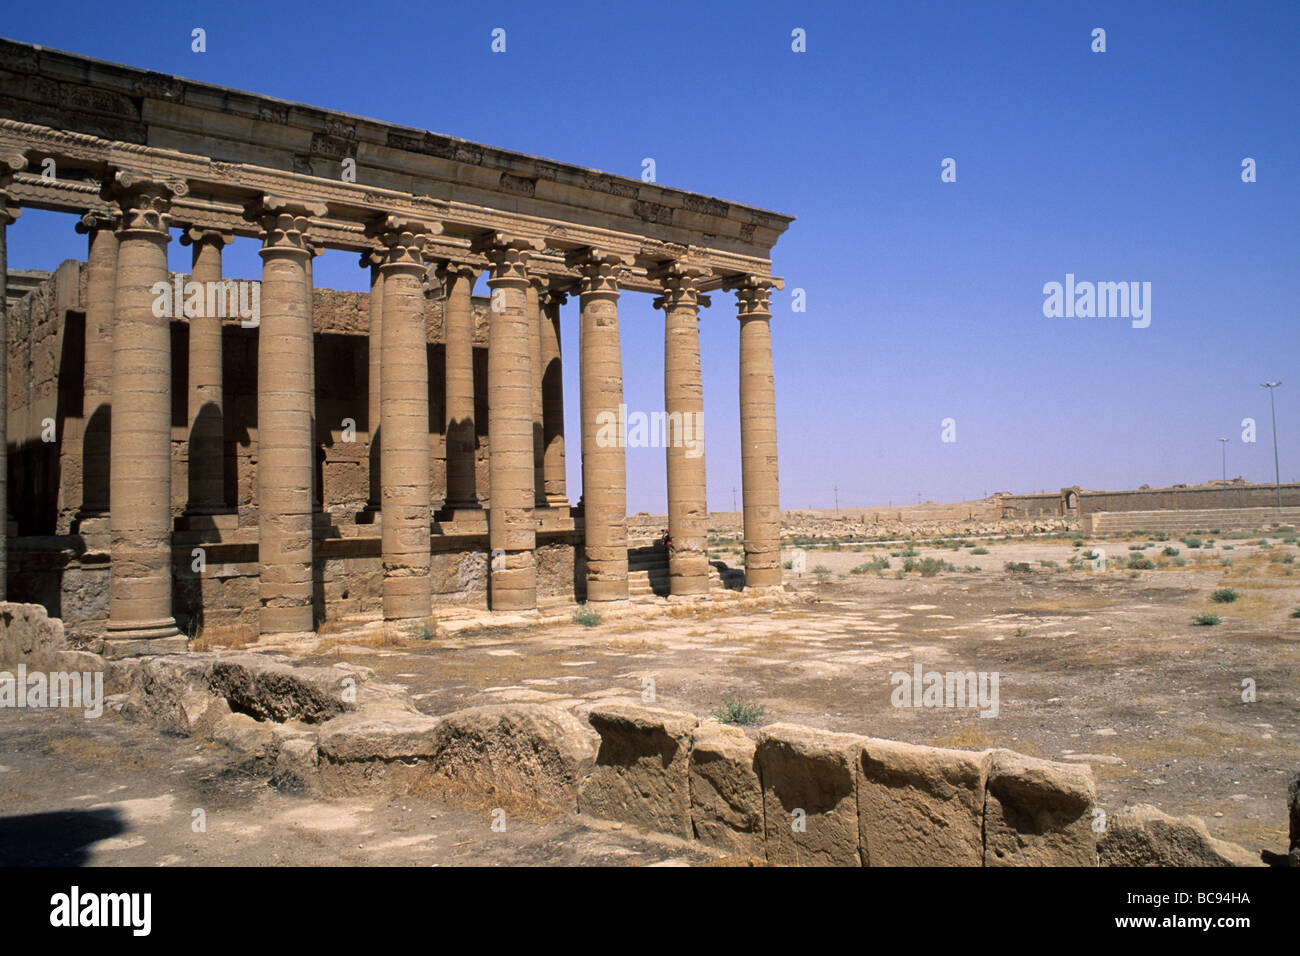 iraq Archaeological site to Hatra - Stock Image